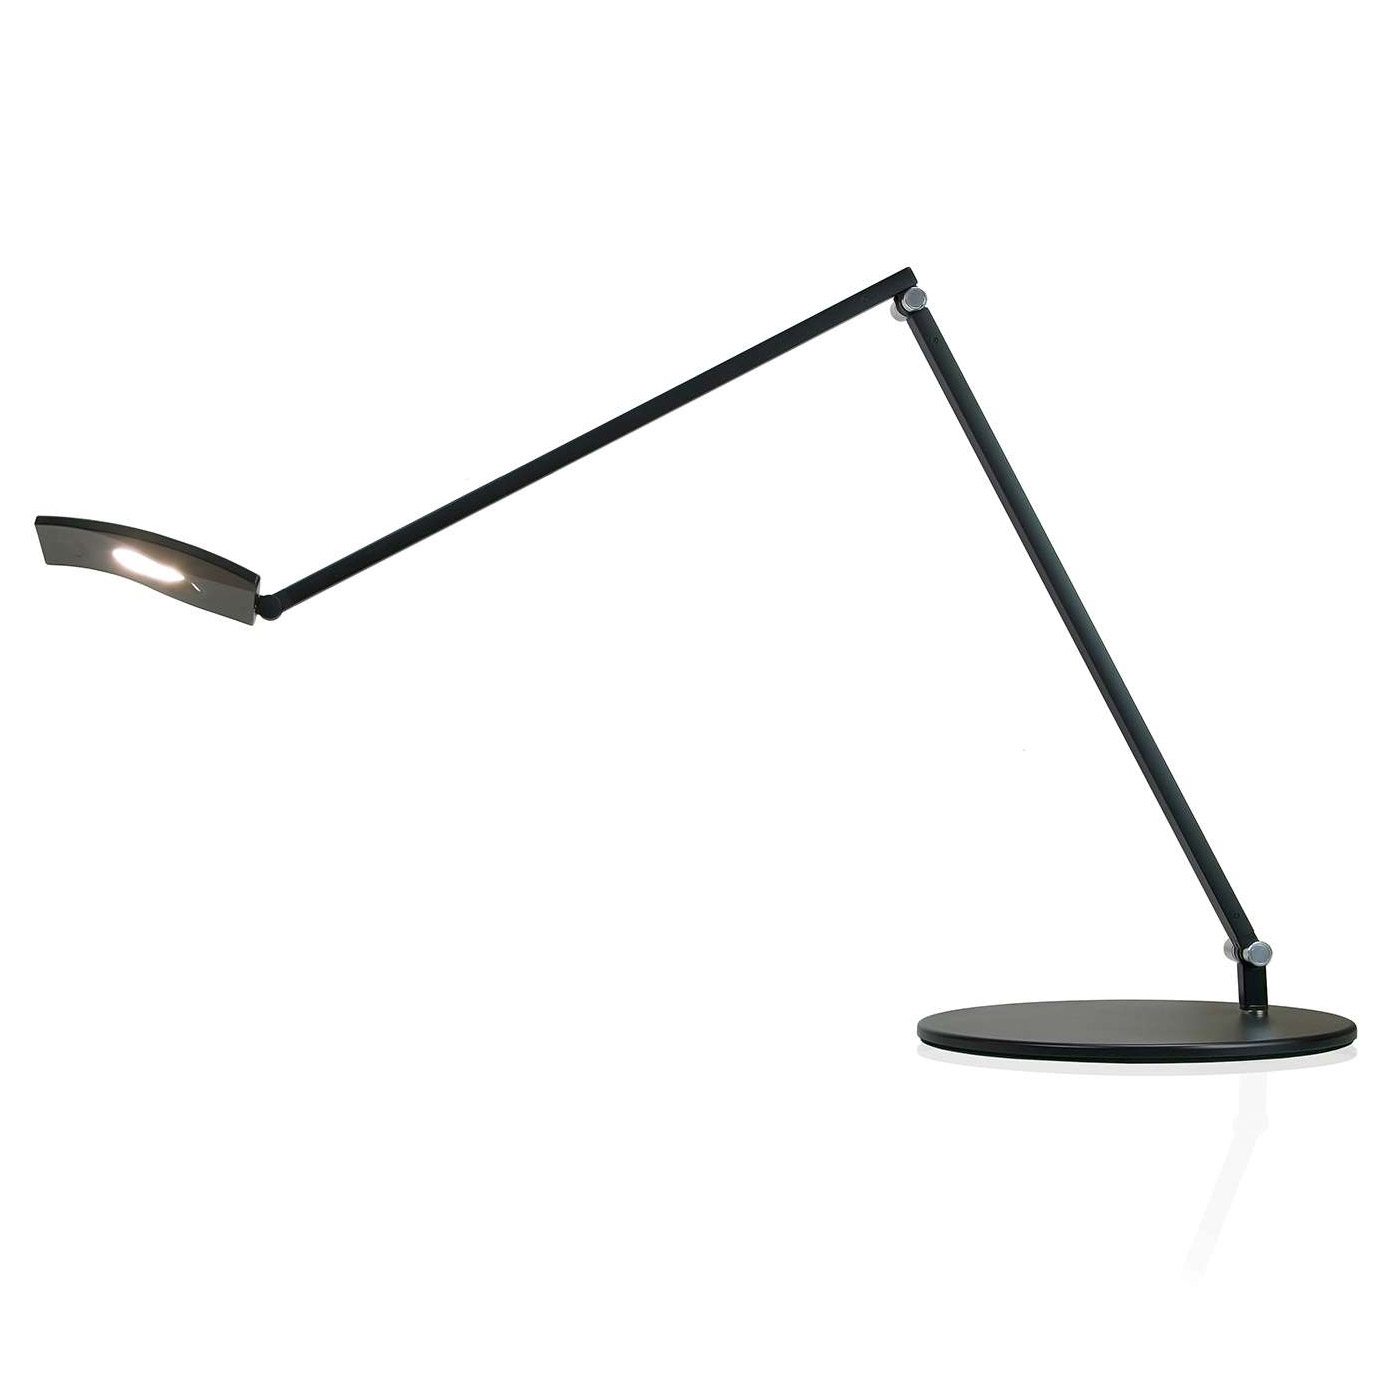 Mosso Pro Tunable White Desk Lamp By Koncept Lighting